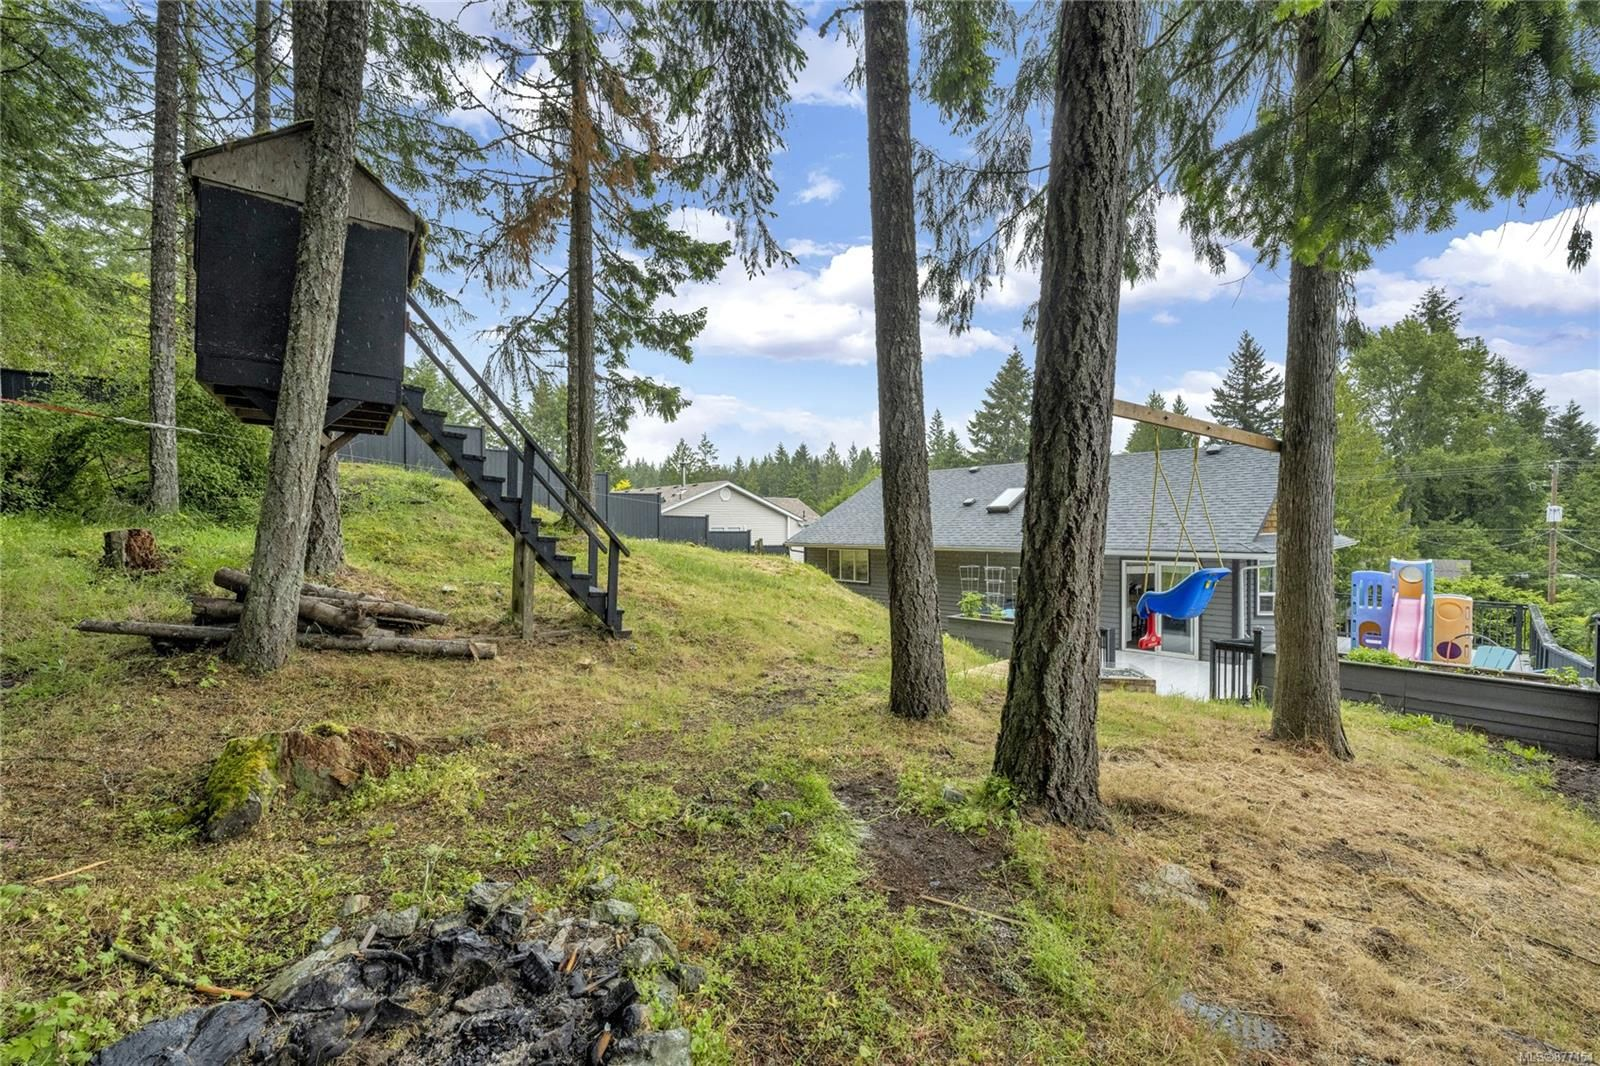 Photo 3: Photos: 2376 Terrace Rd in : ML Shawnigan House for sale (Malahat & Area)  : MLS®# 877154